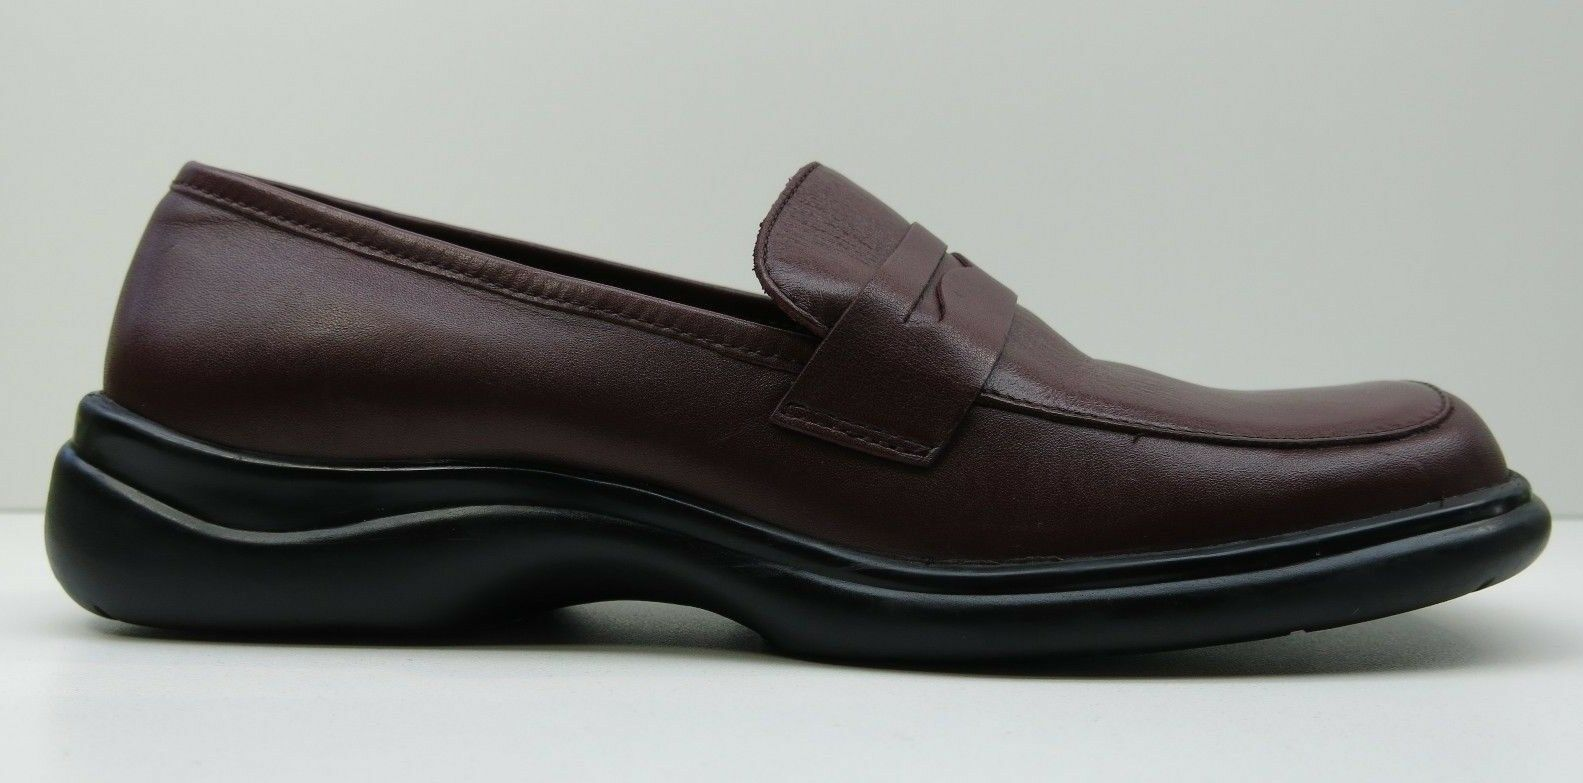 Franco Loafers Sarto Burgundy Red Leather Wedge Heels Penny Loafers Franco Pumps Shoes 5.5 $79 4fbce9